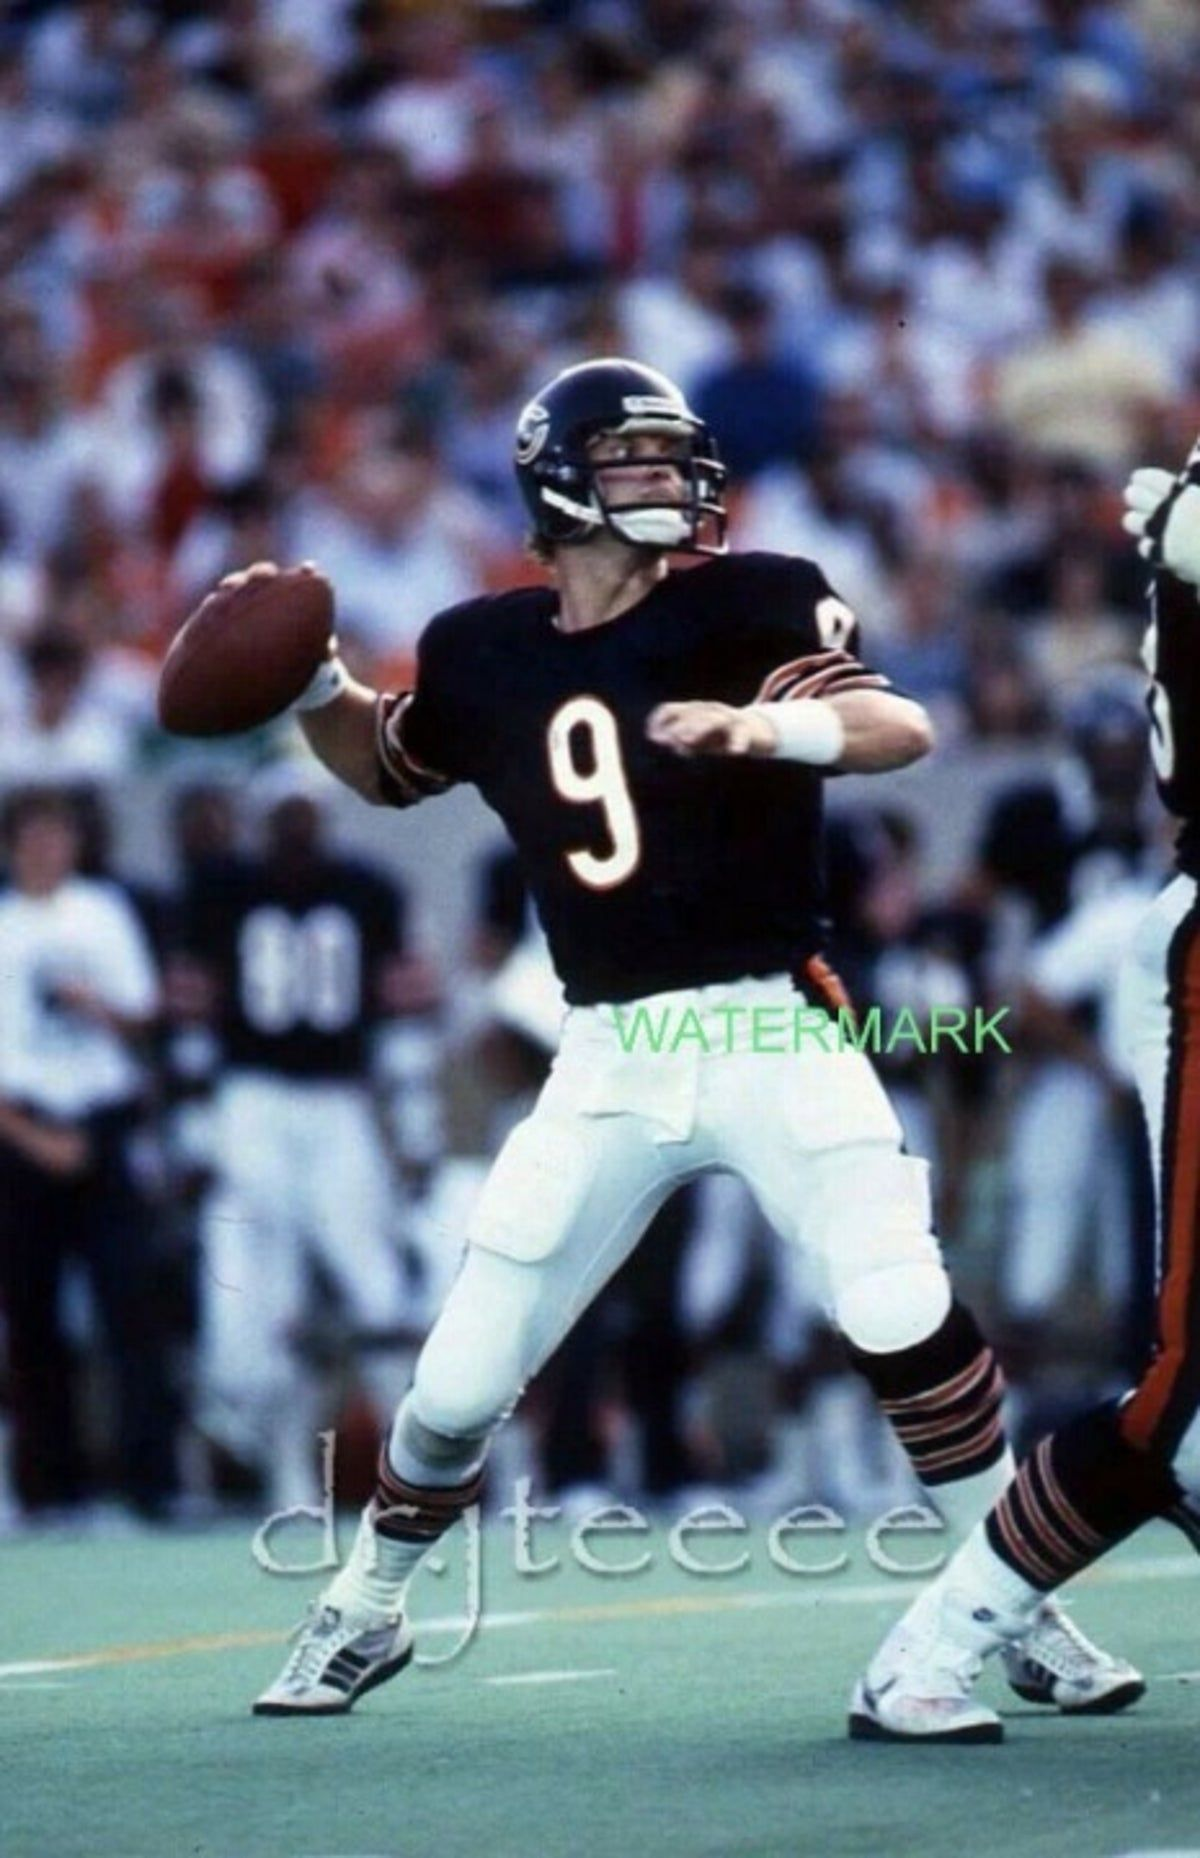 Nfl Jim Mcmahon Publicity Photo 732 In 2020 Chicago Bears Football Chicago Bears Pictures Bears Football